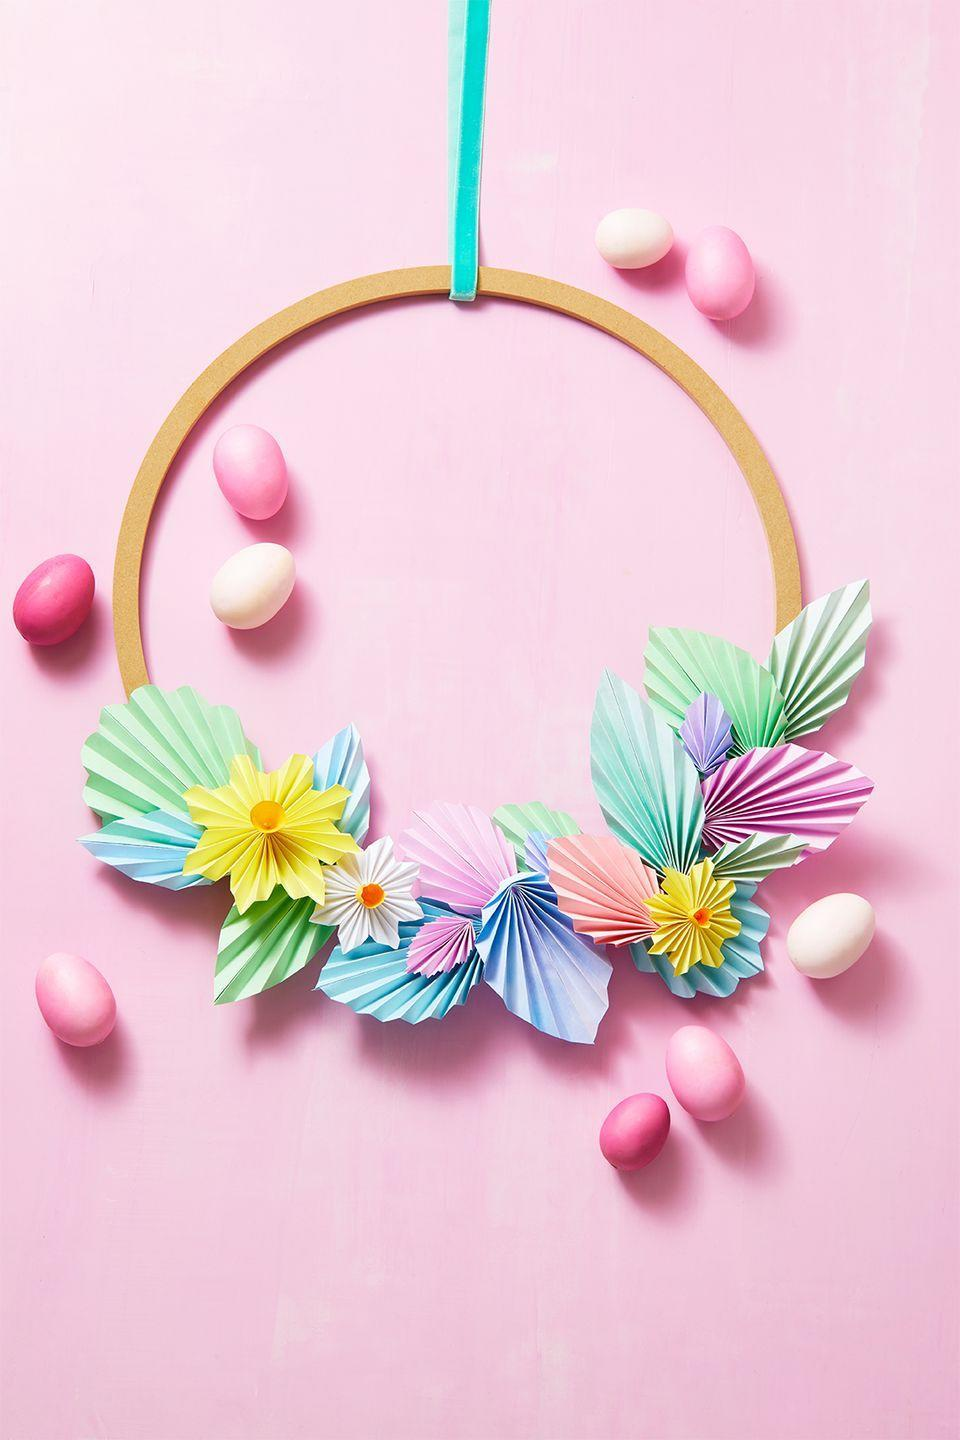 """<p>Embrace the beauty of the spring with a wreath that puts eye-catching pastel colors on full display. For this look, a wooden frame is taken to the next level with an assortment of vibrant paper leaves and flowers. </p><p><a href=""""https://www.goodhousekeeping.com/holidays/easter-ideas/g977/spring-easter-wreaths/?slide=1"""" rel=""""nofollow noopener"""" target=""""_blank"""" data-ylk=""""slk:Get the tutorial »"""" class=""""link rapid-noclick-resp""""><em>Get the tutorial »</em></a></p>"""